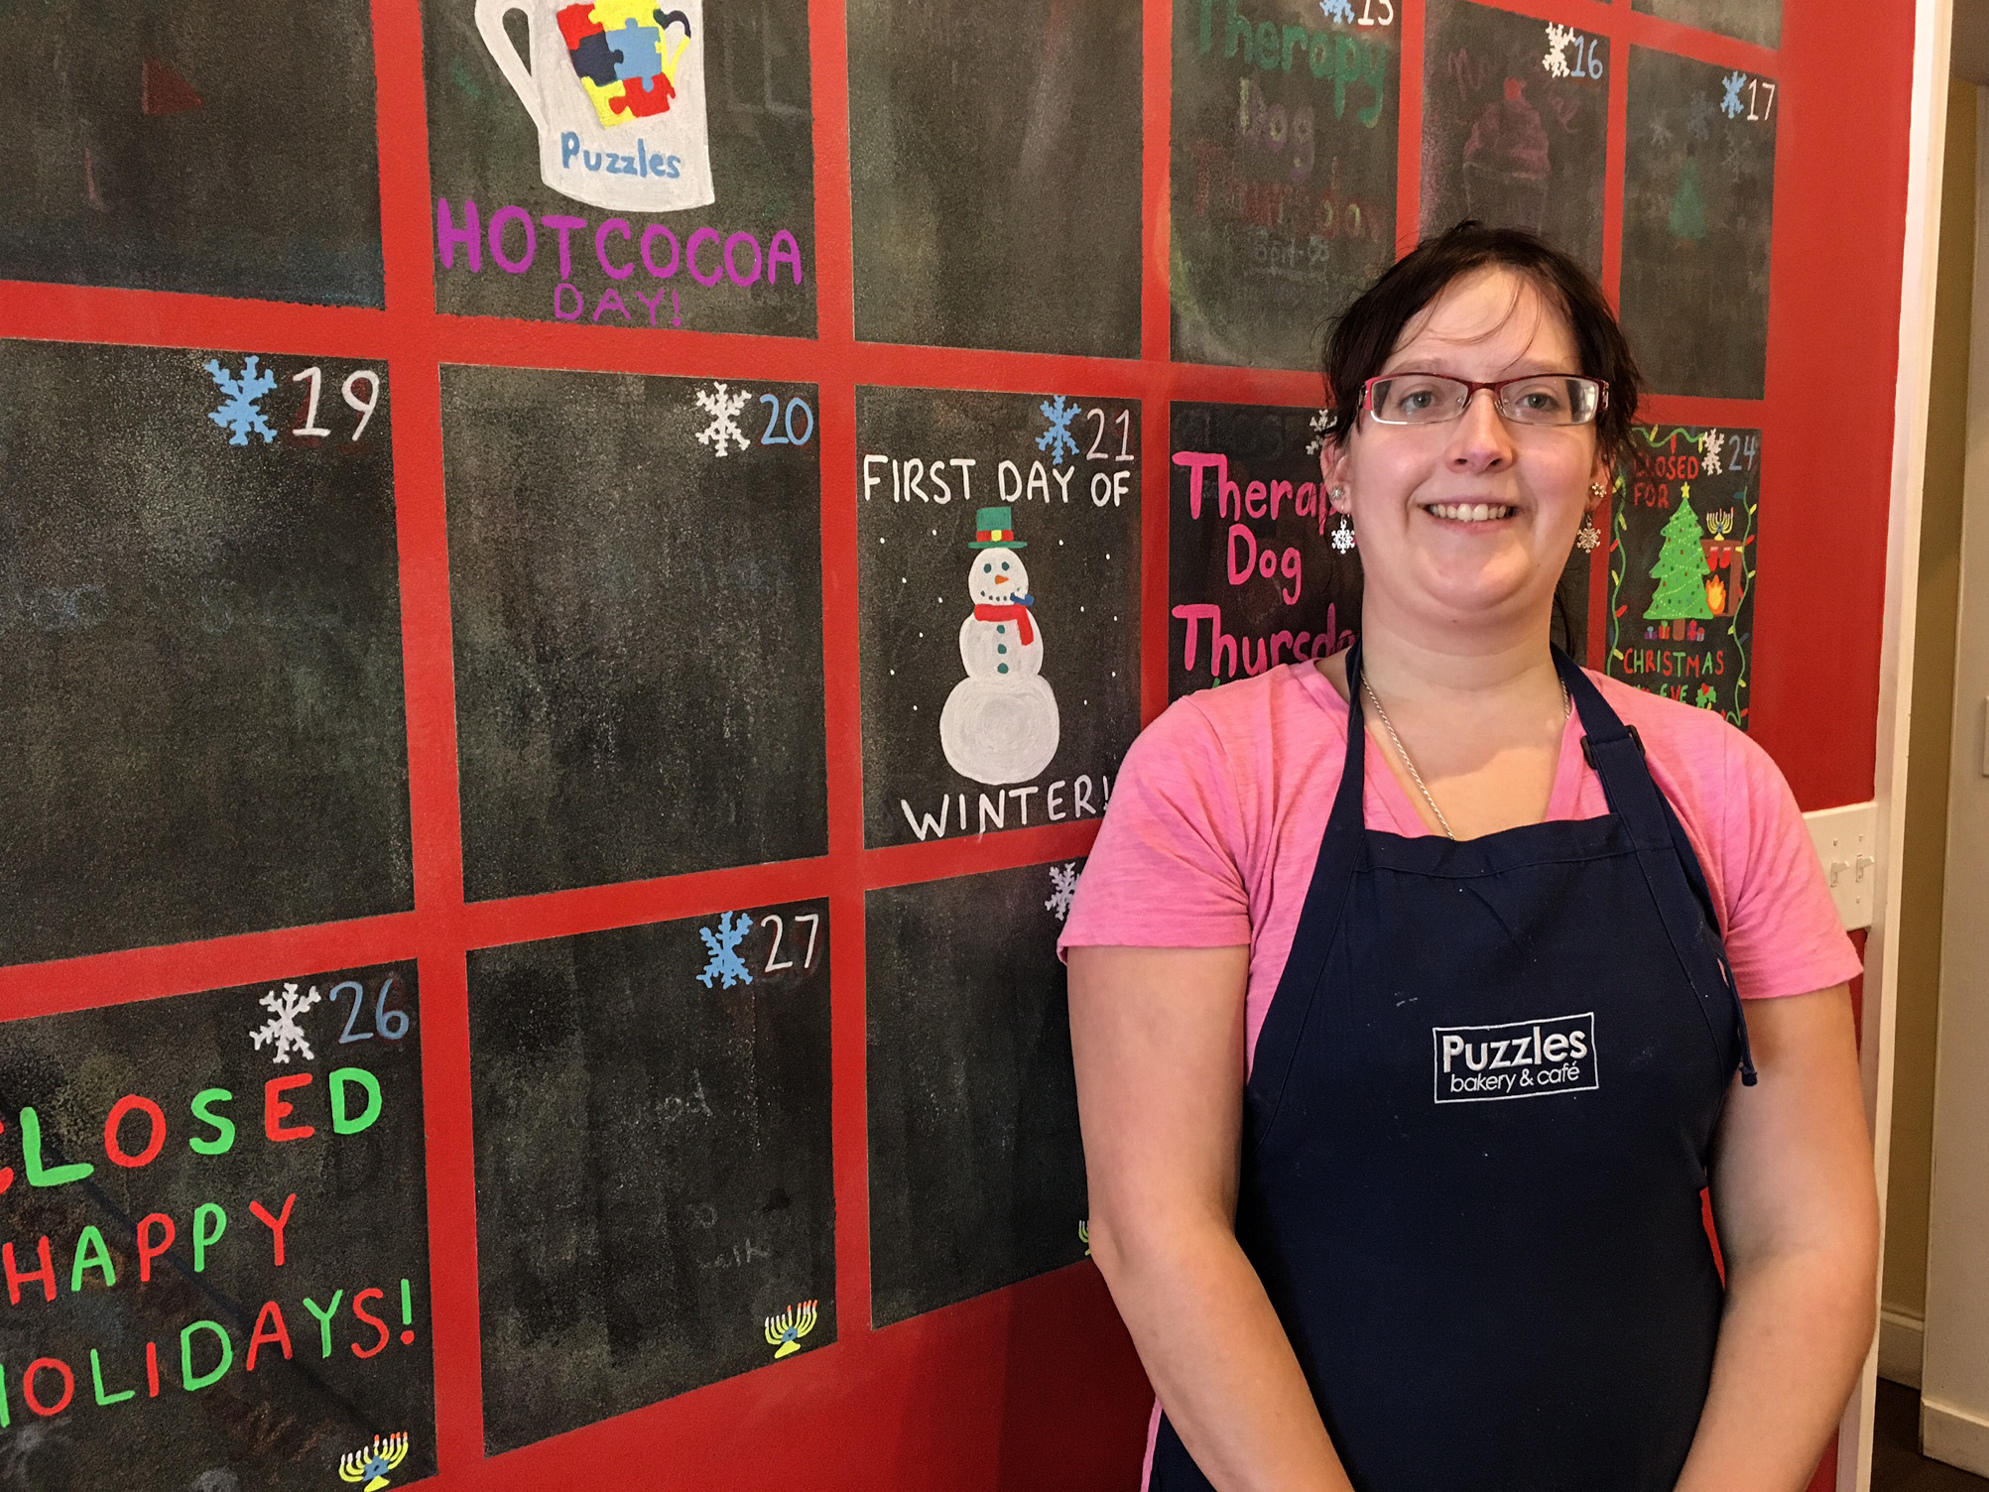 For People With Developmental Disabilities Food Npr >> For People With Developmental Disabilities, Food Work ...